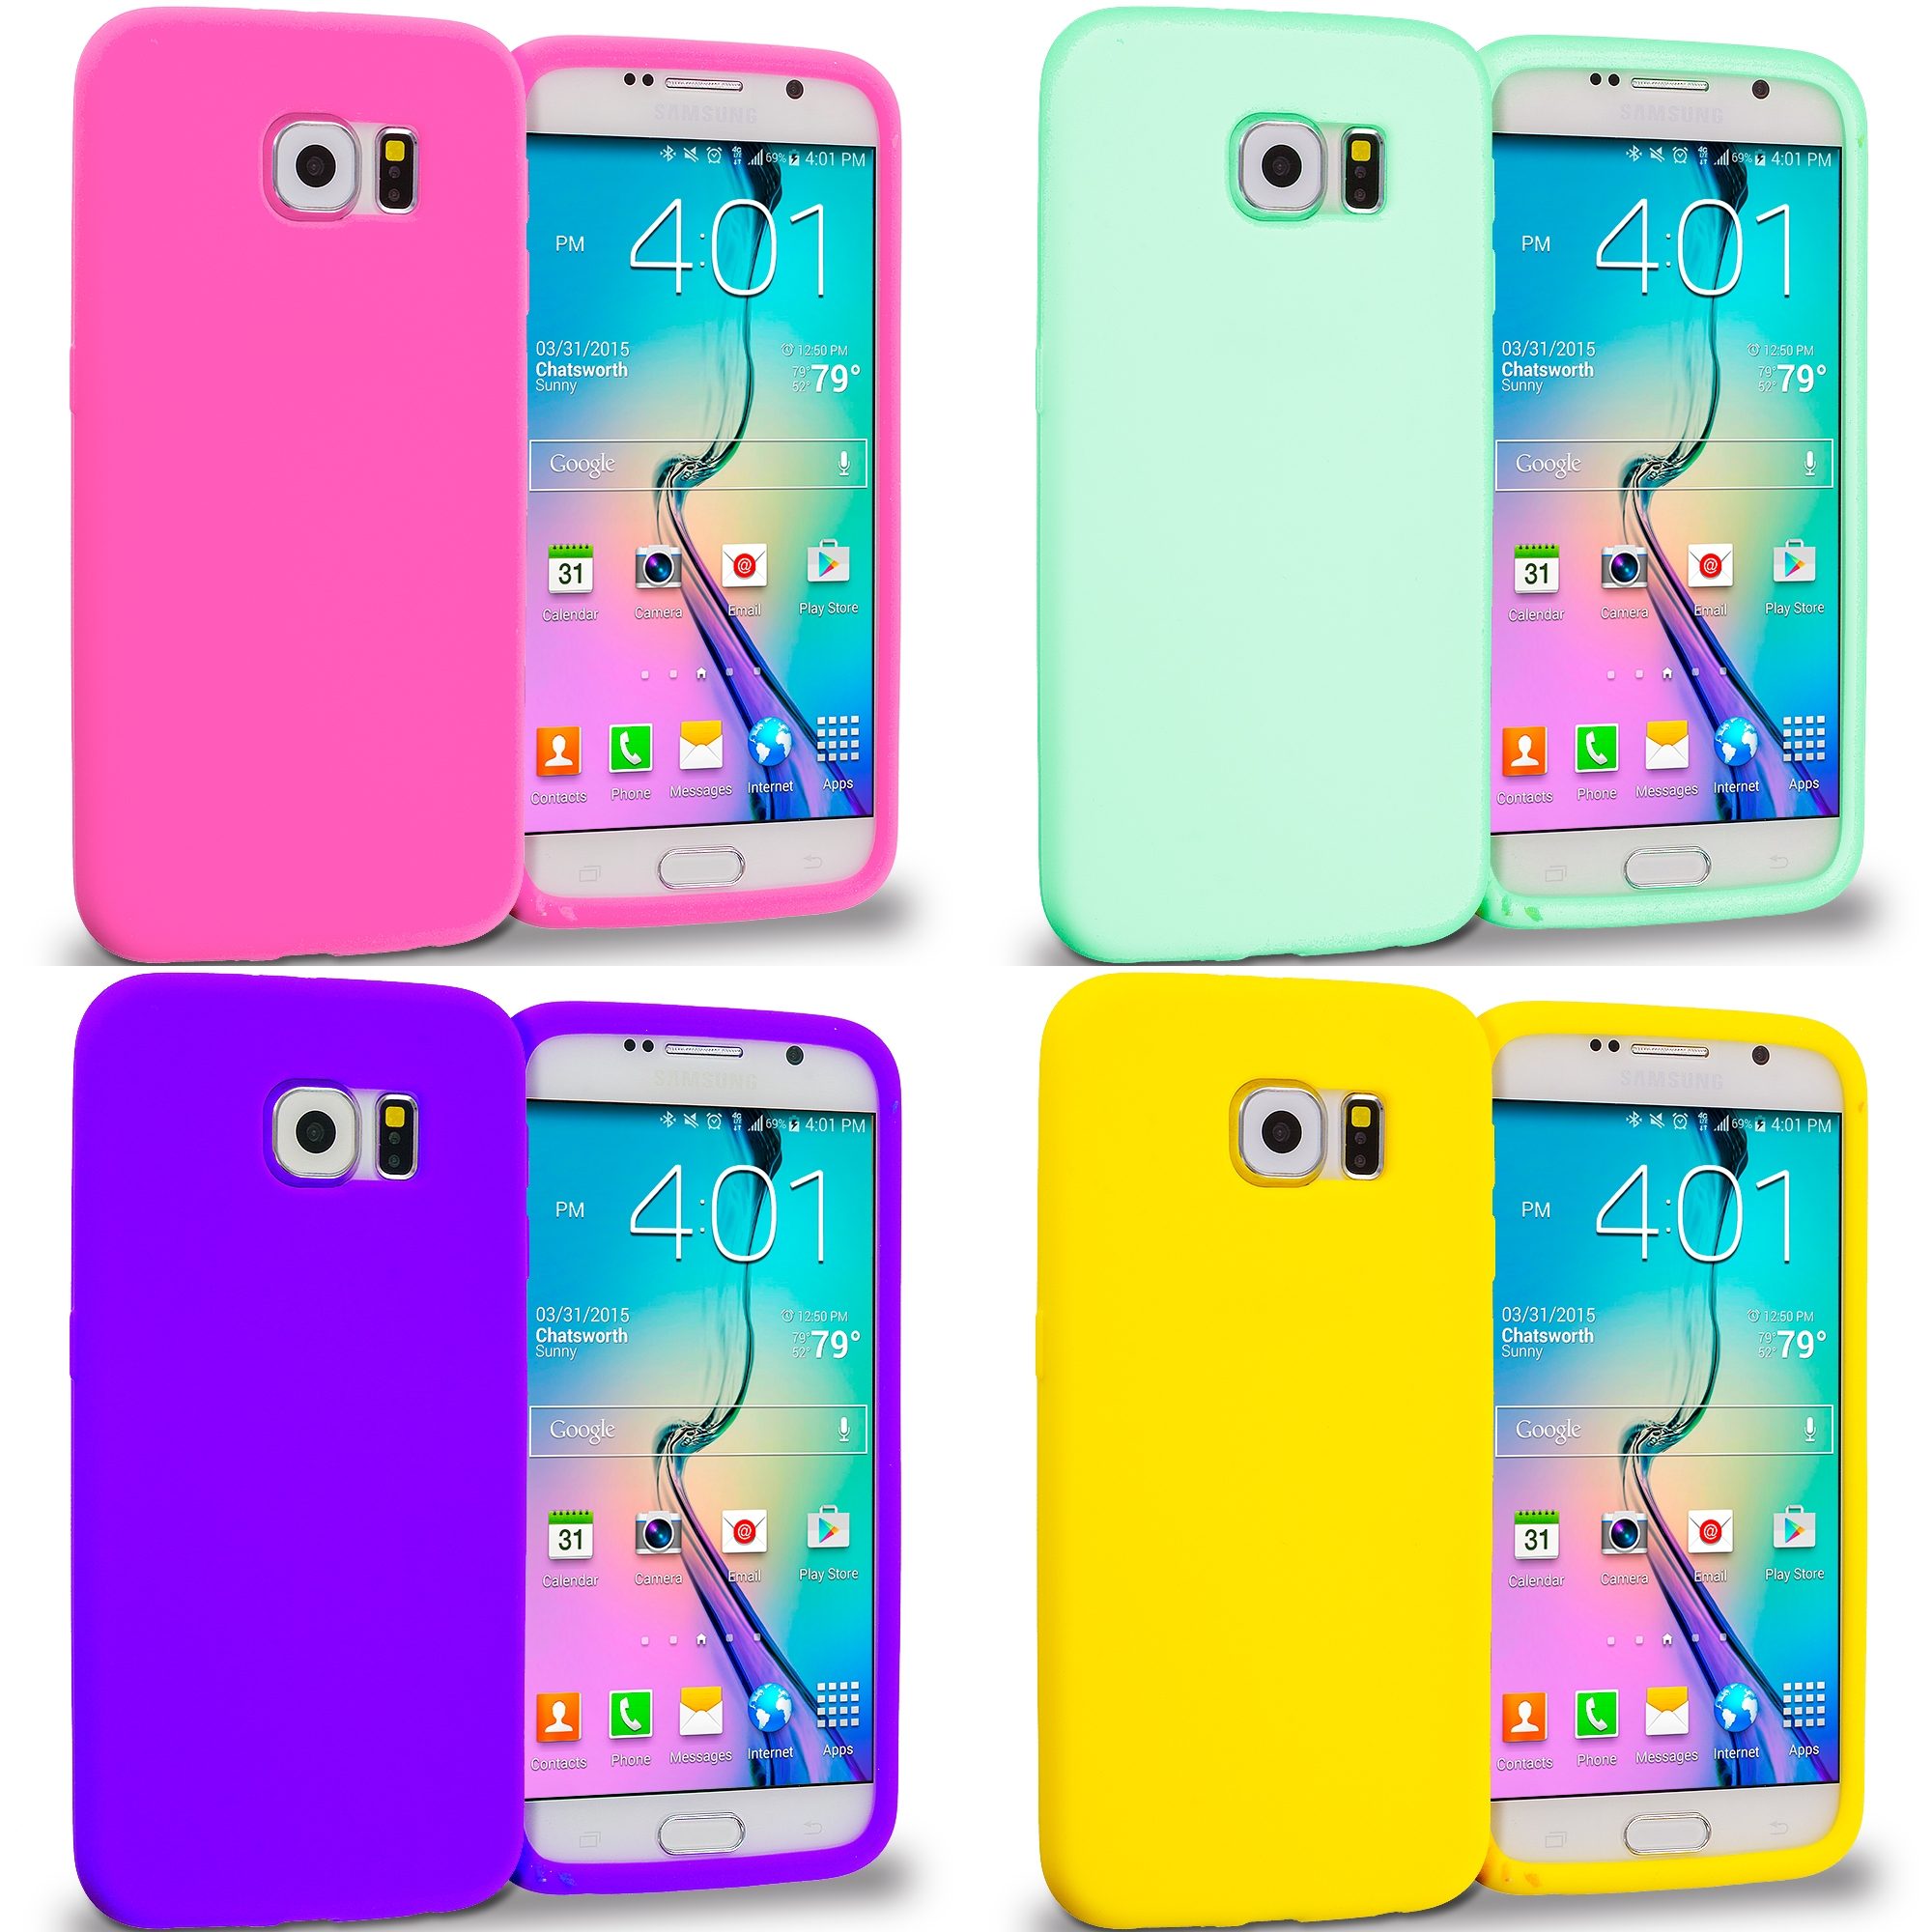 Samsung Galaxy S6 4 in 1 Combo Bundle Pack - Silicone Soft Skin Rubber Case Cover